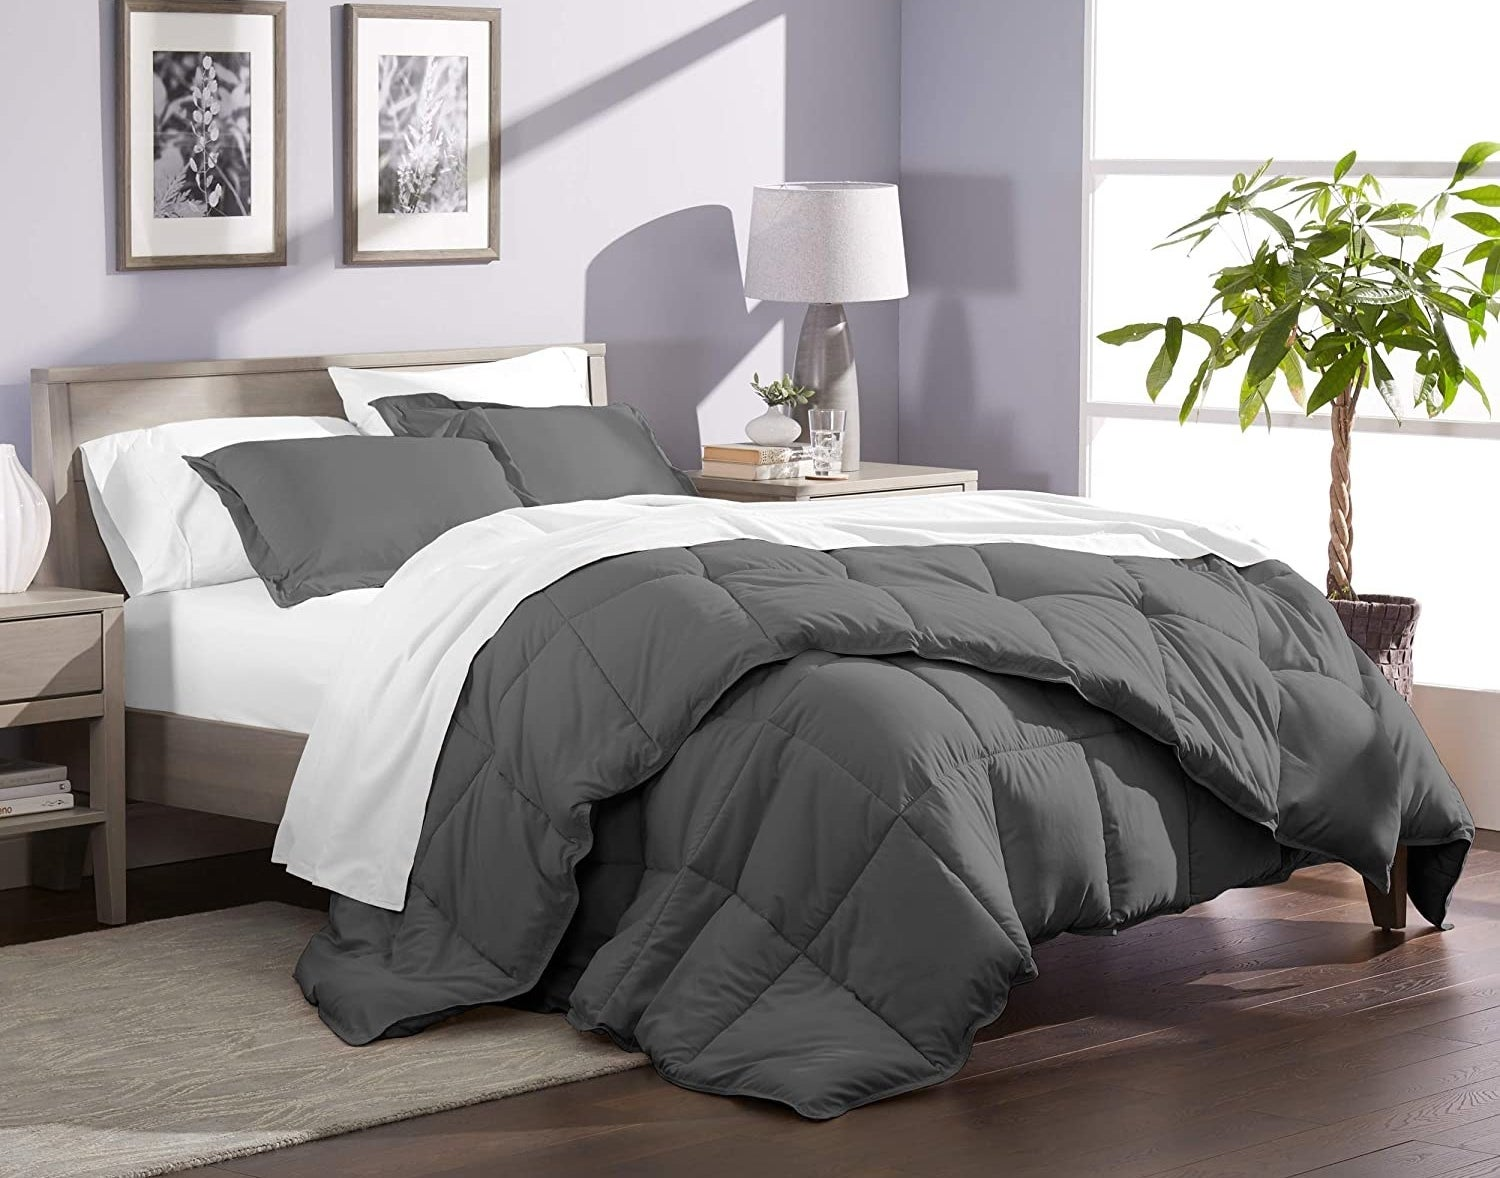 The comforter set on a bed